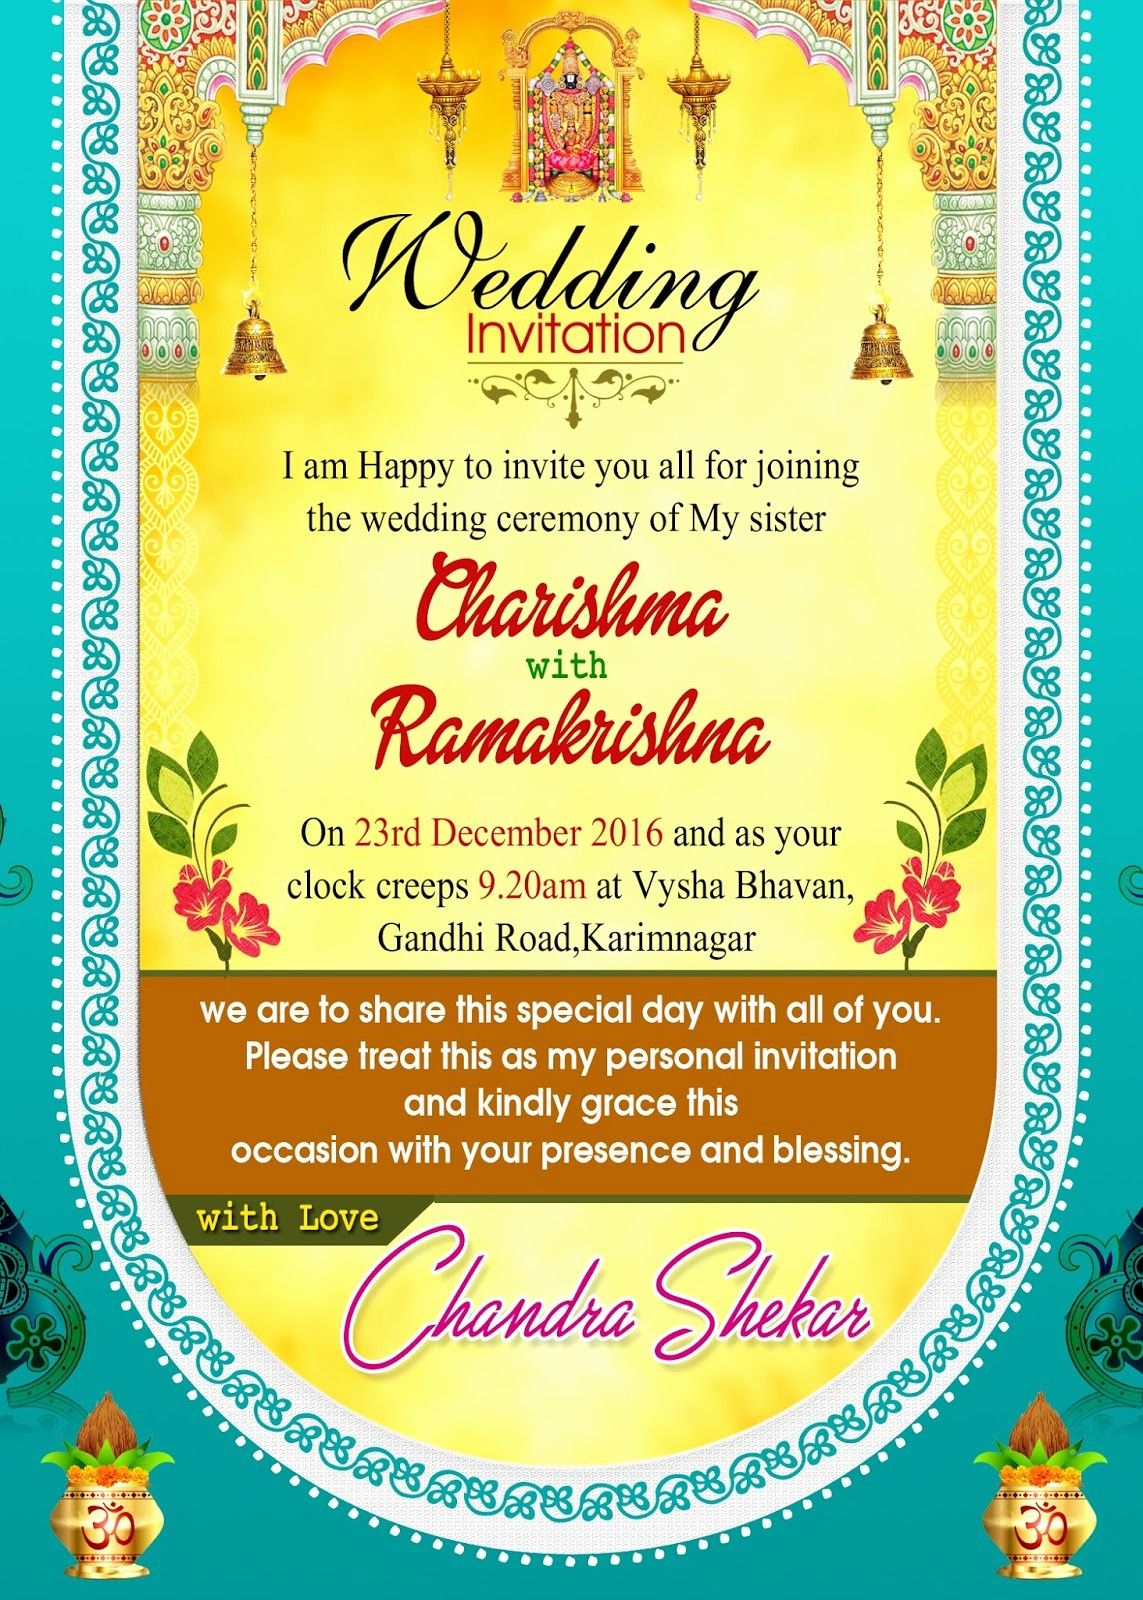 Invitation Card Template Free Download Lovely Indian